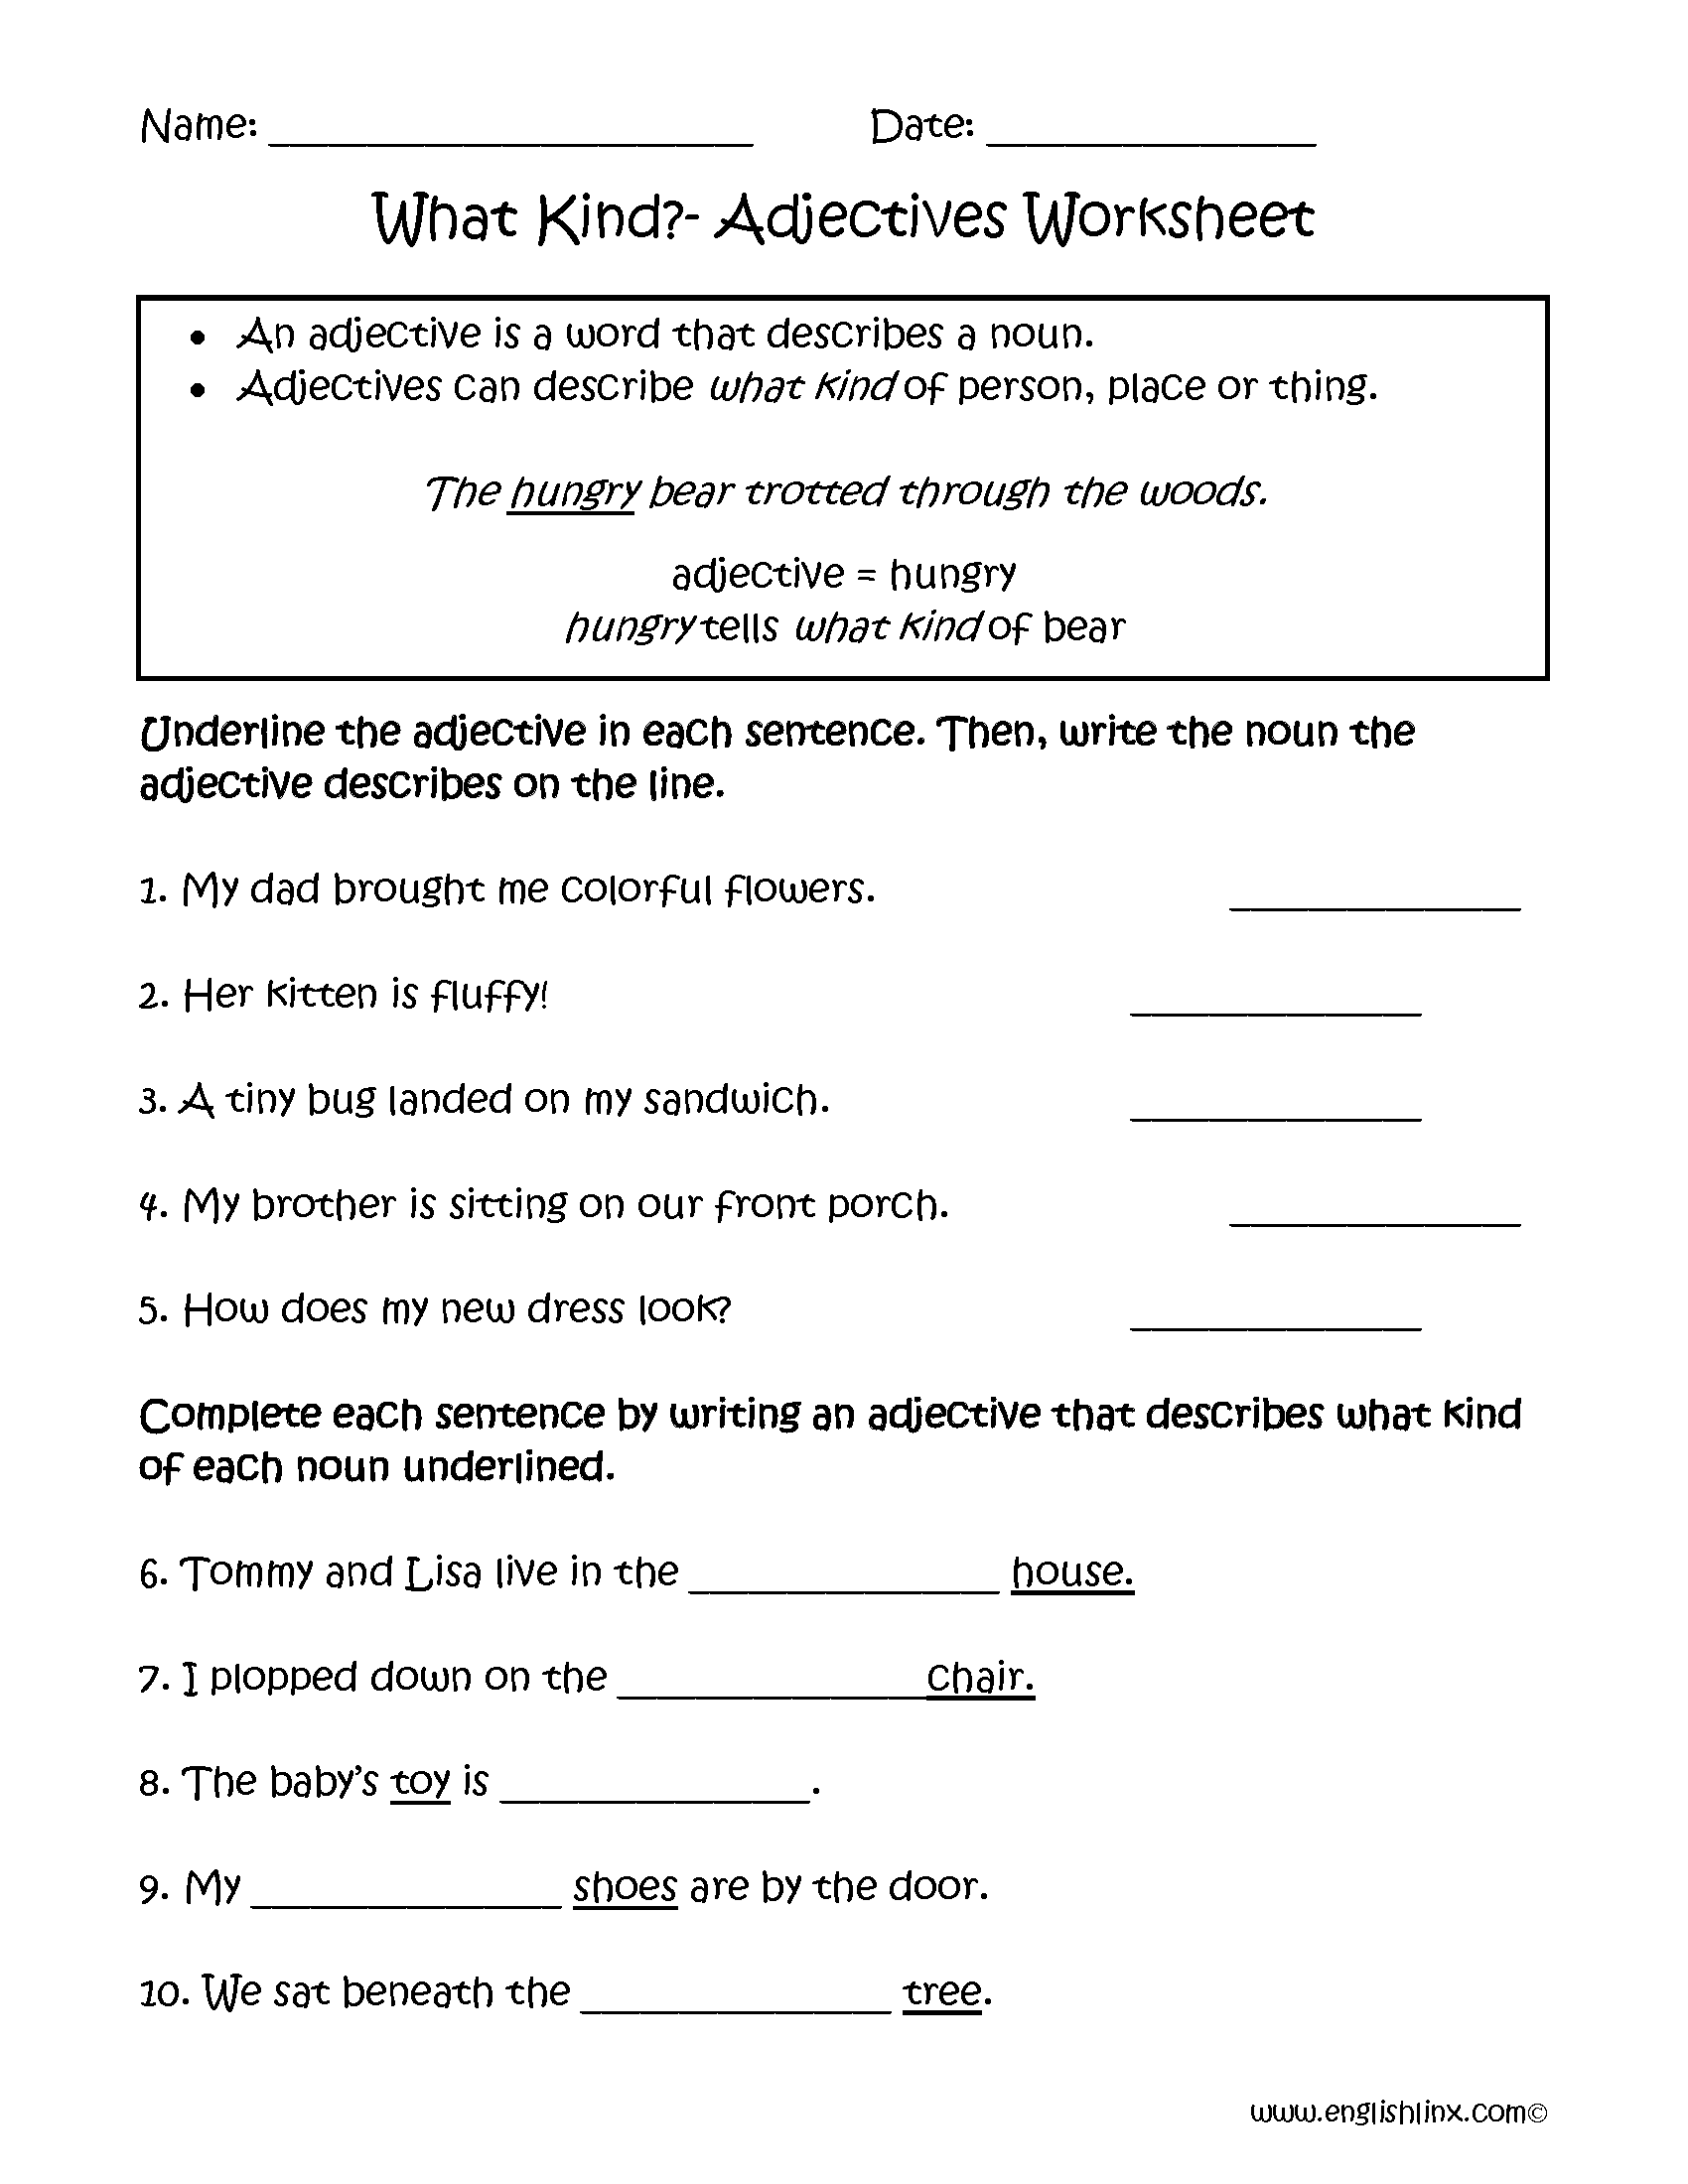 Worksheet Adjective Worksheets For Grade 2 adjectives worksheets regular worksheets